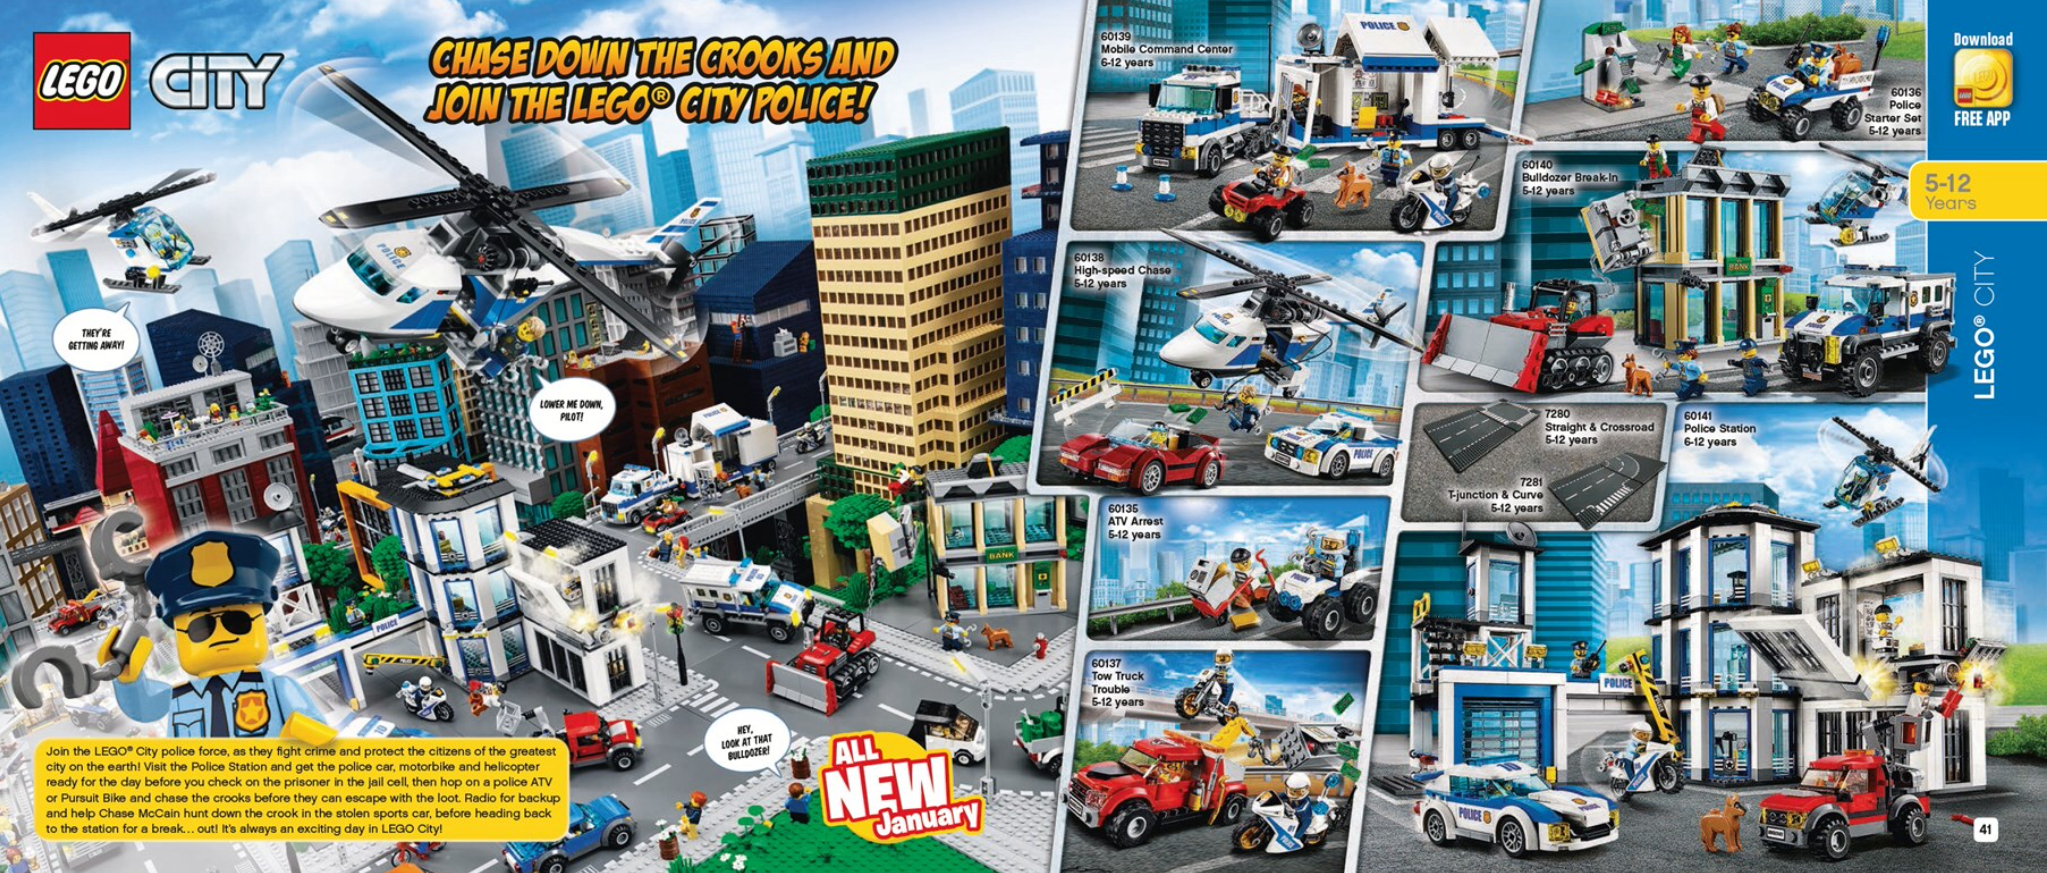 Australian Lego Release Dates First Half Of 2017 Sets January June 60141 City Police Station